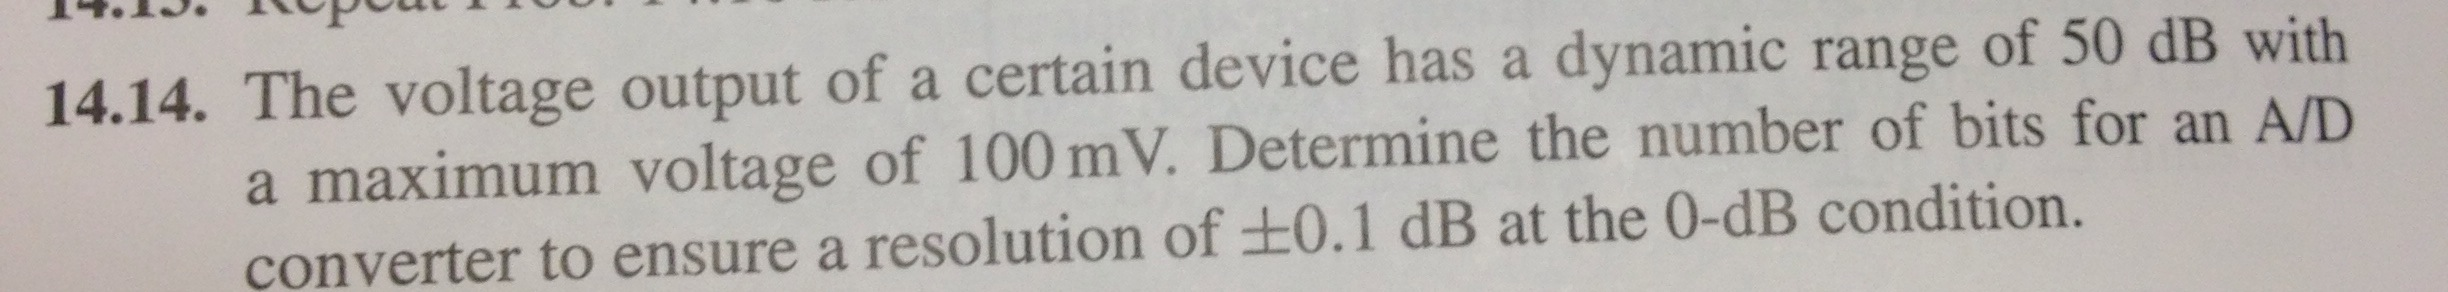 The voltage output of a certain device has a dynam